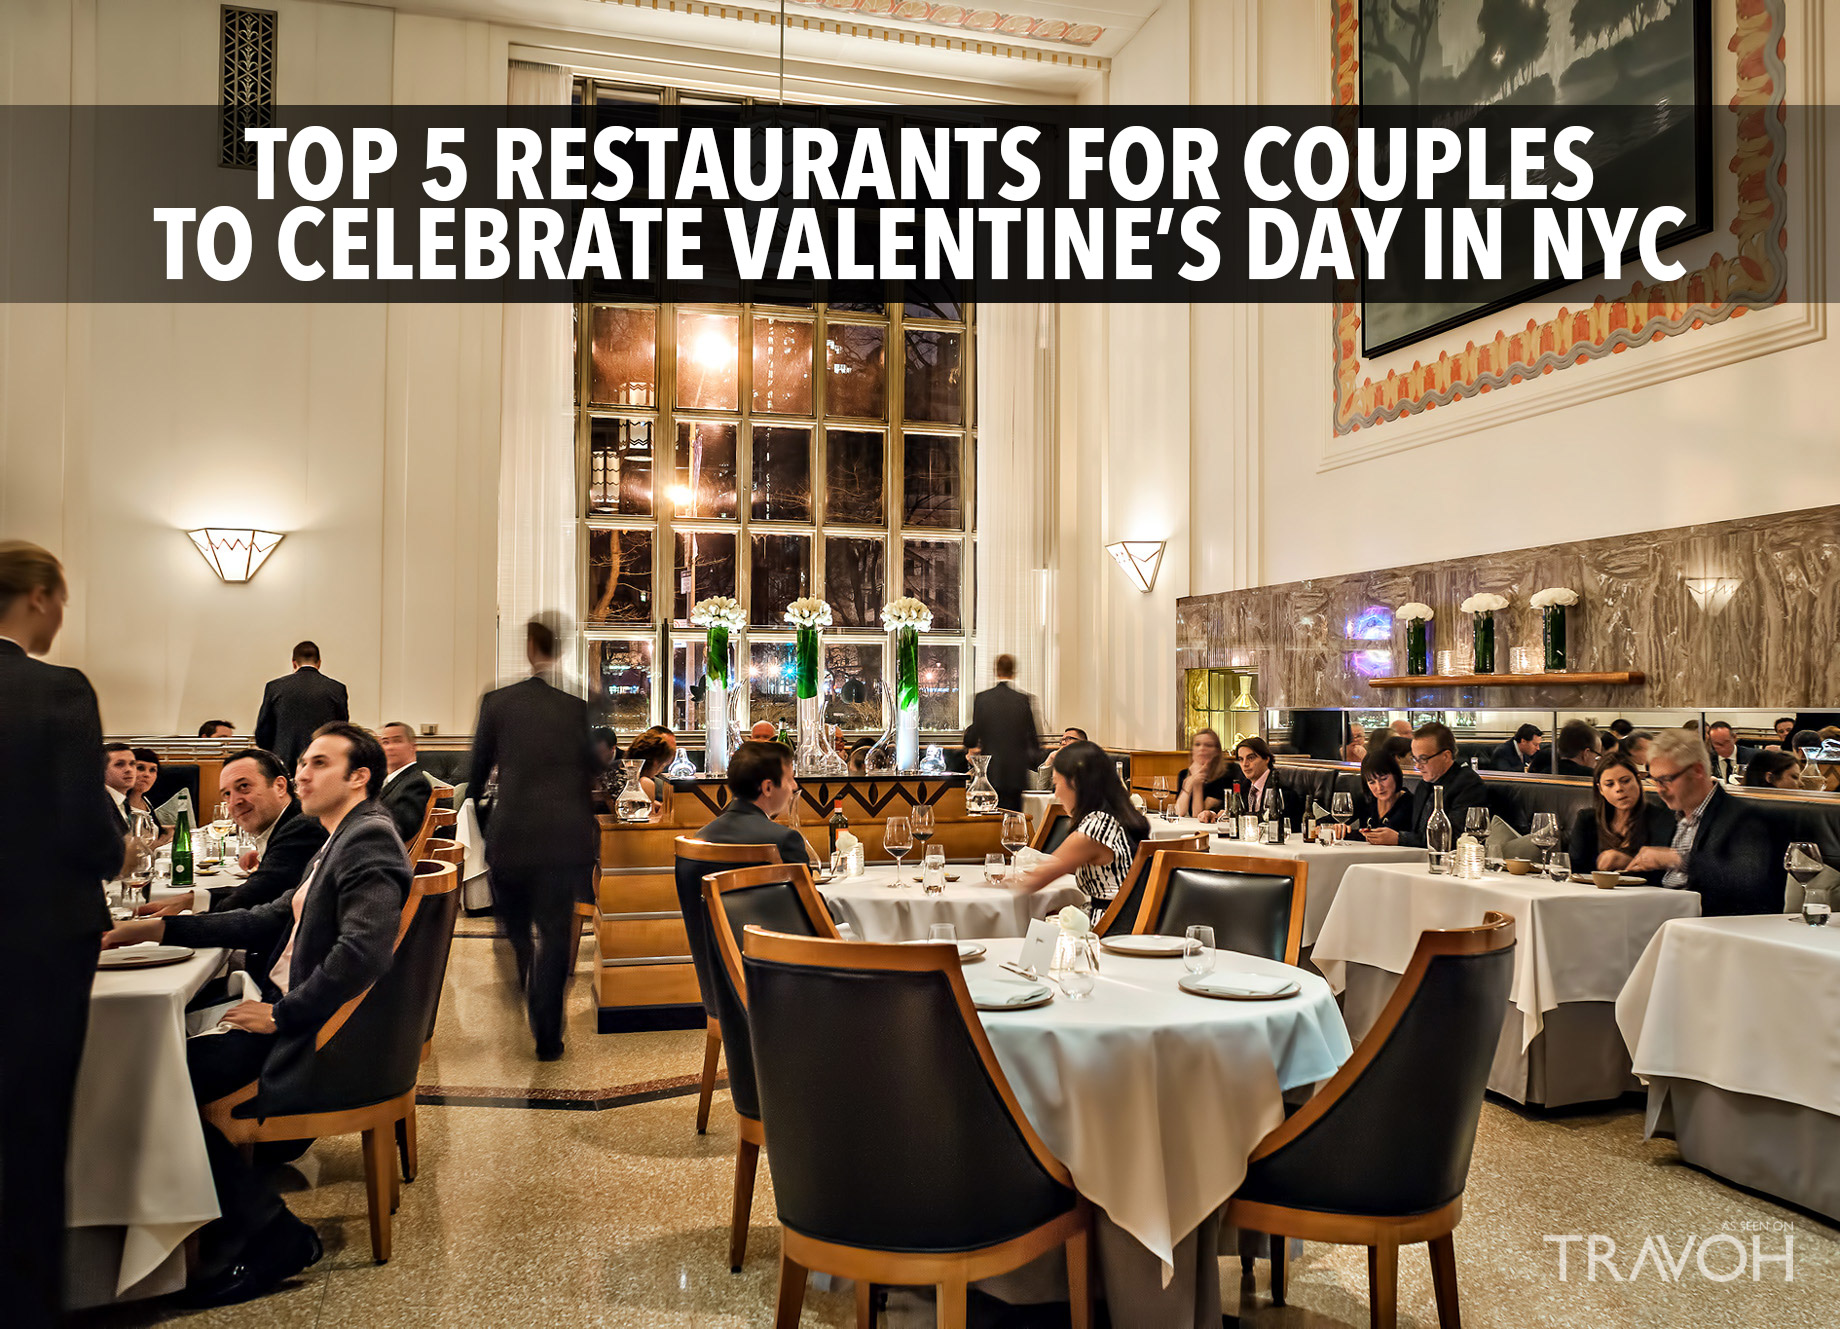 Top 5 Restaurants For Couples To Celebrate Valentine S Day In Nyc